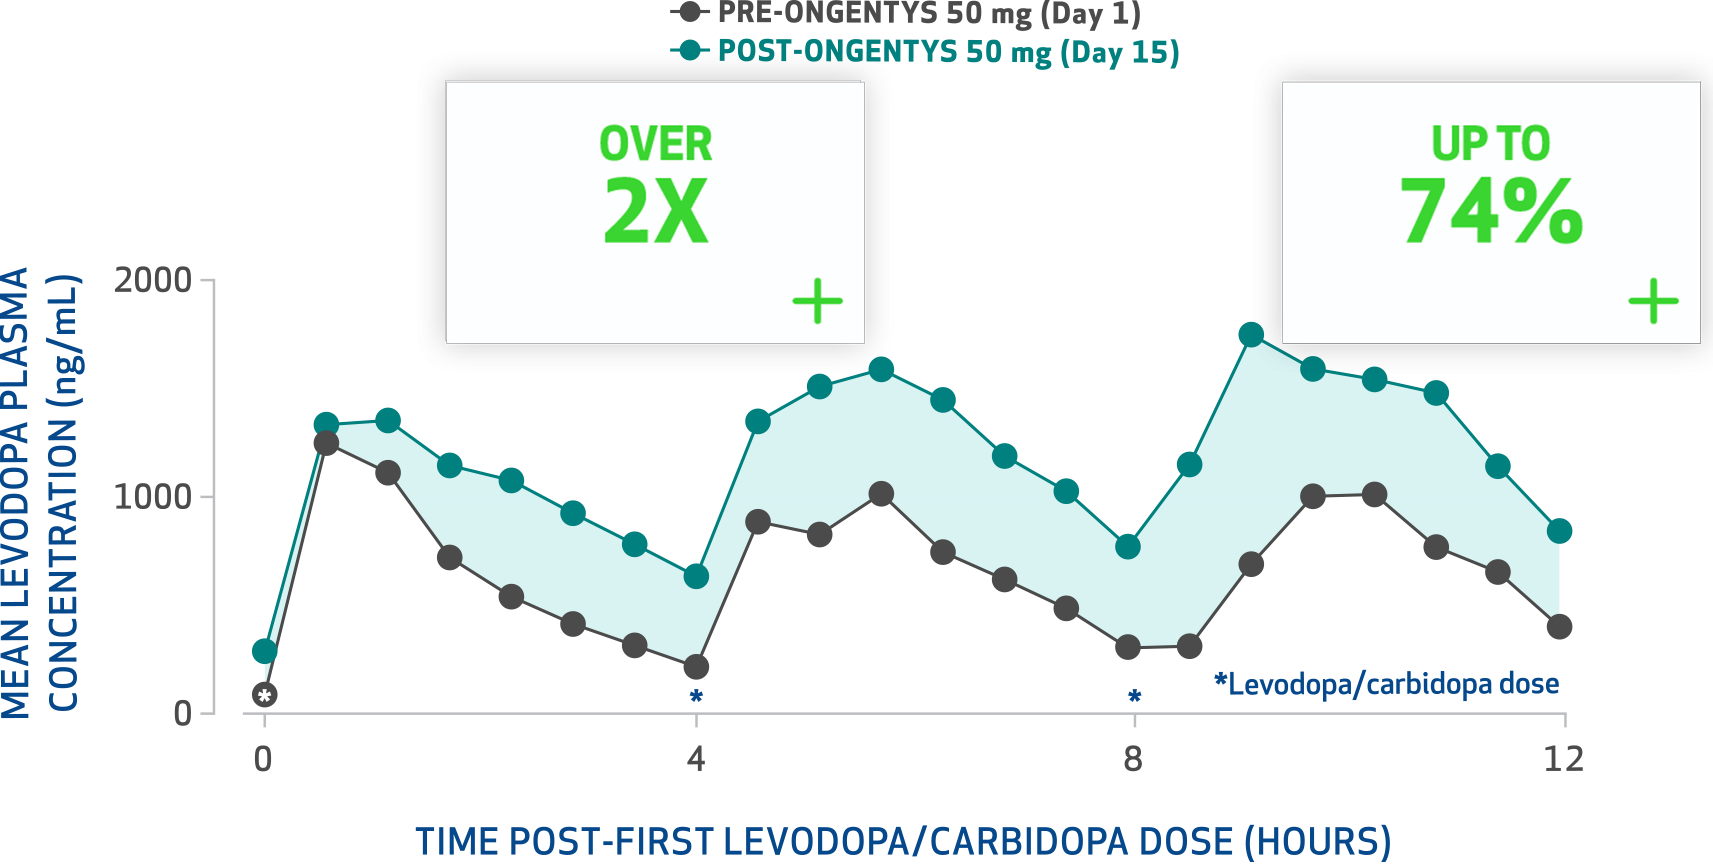 Levodopa Exposure Graph showing increased mean levodopa plasma concentration (ng/mL) through 12 hours post first dose